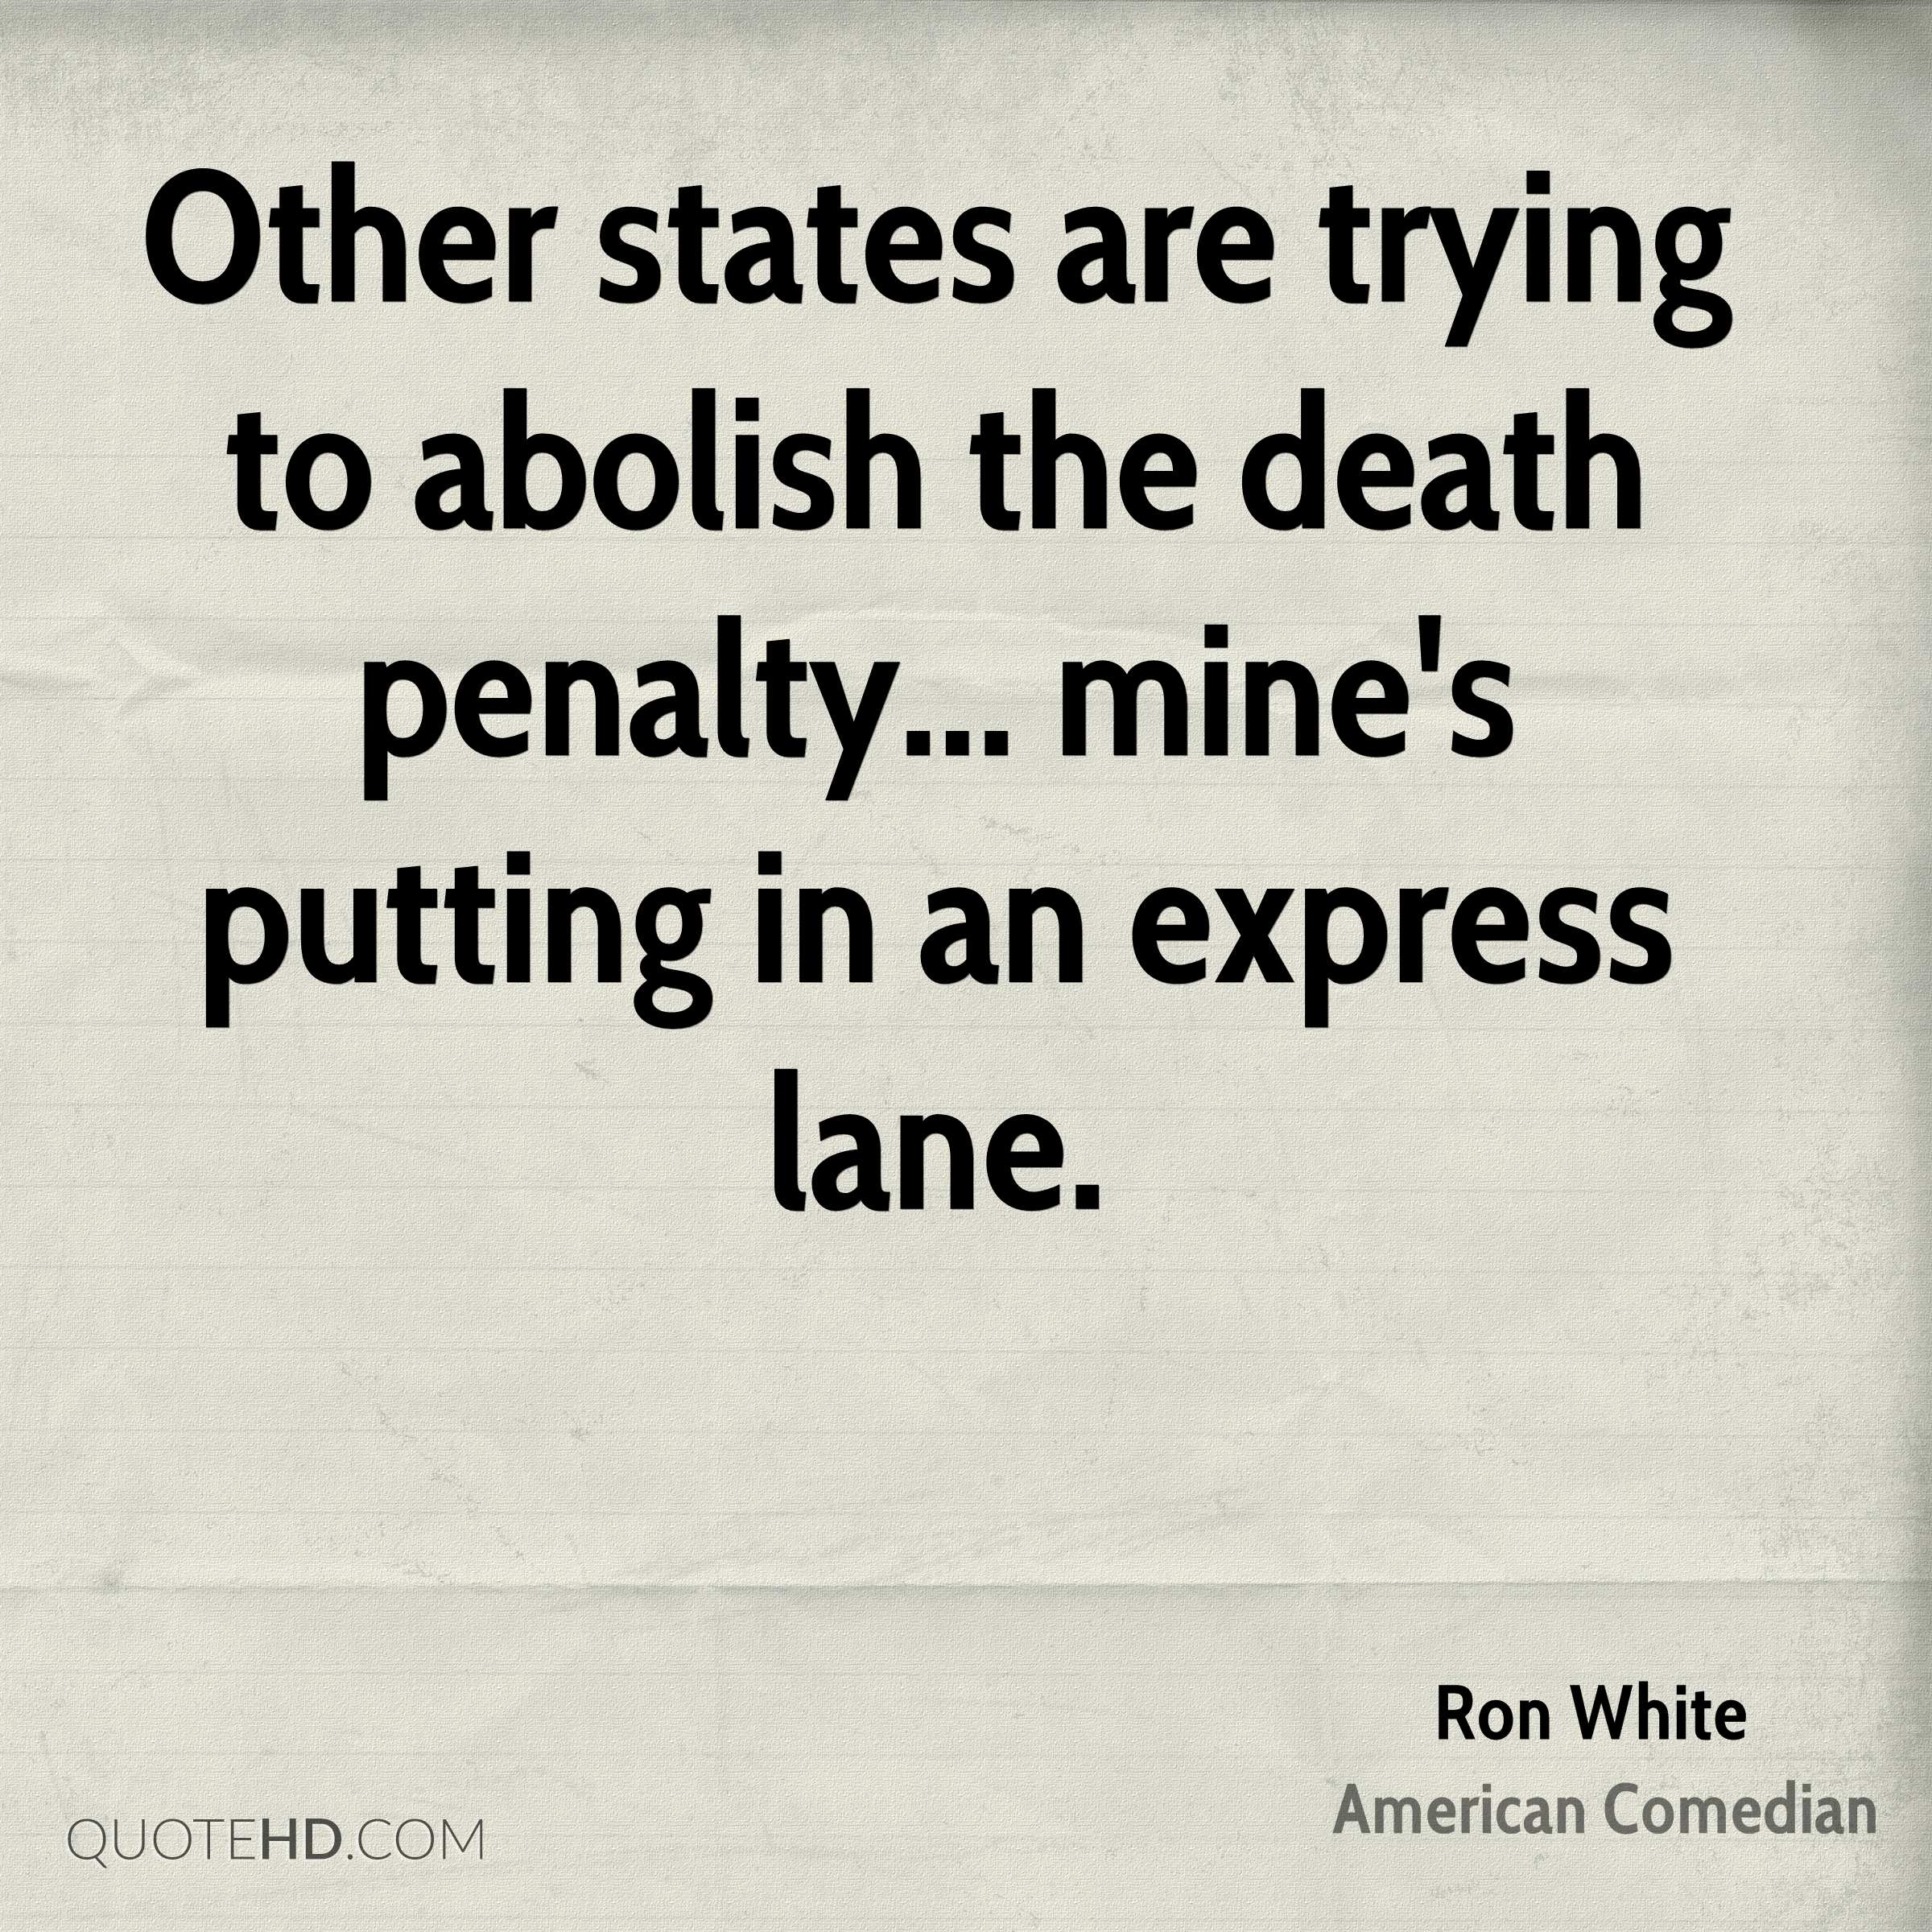 Other states are trying to abolish the death penalty... mine's putting in an express lane.